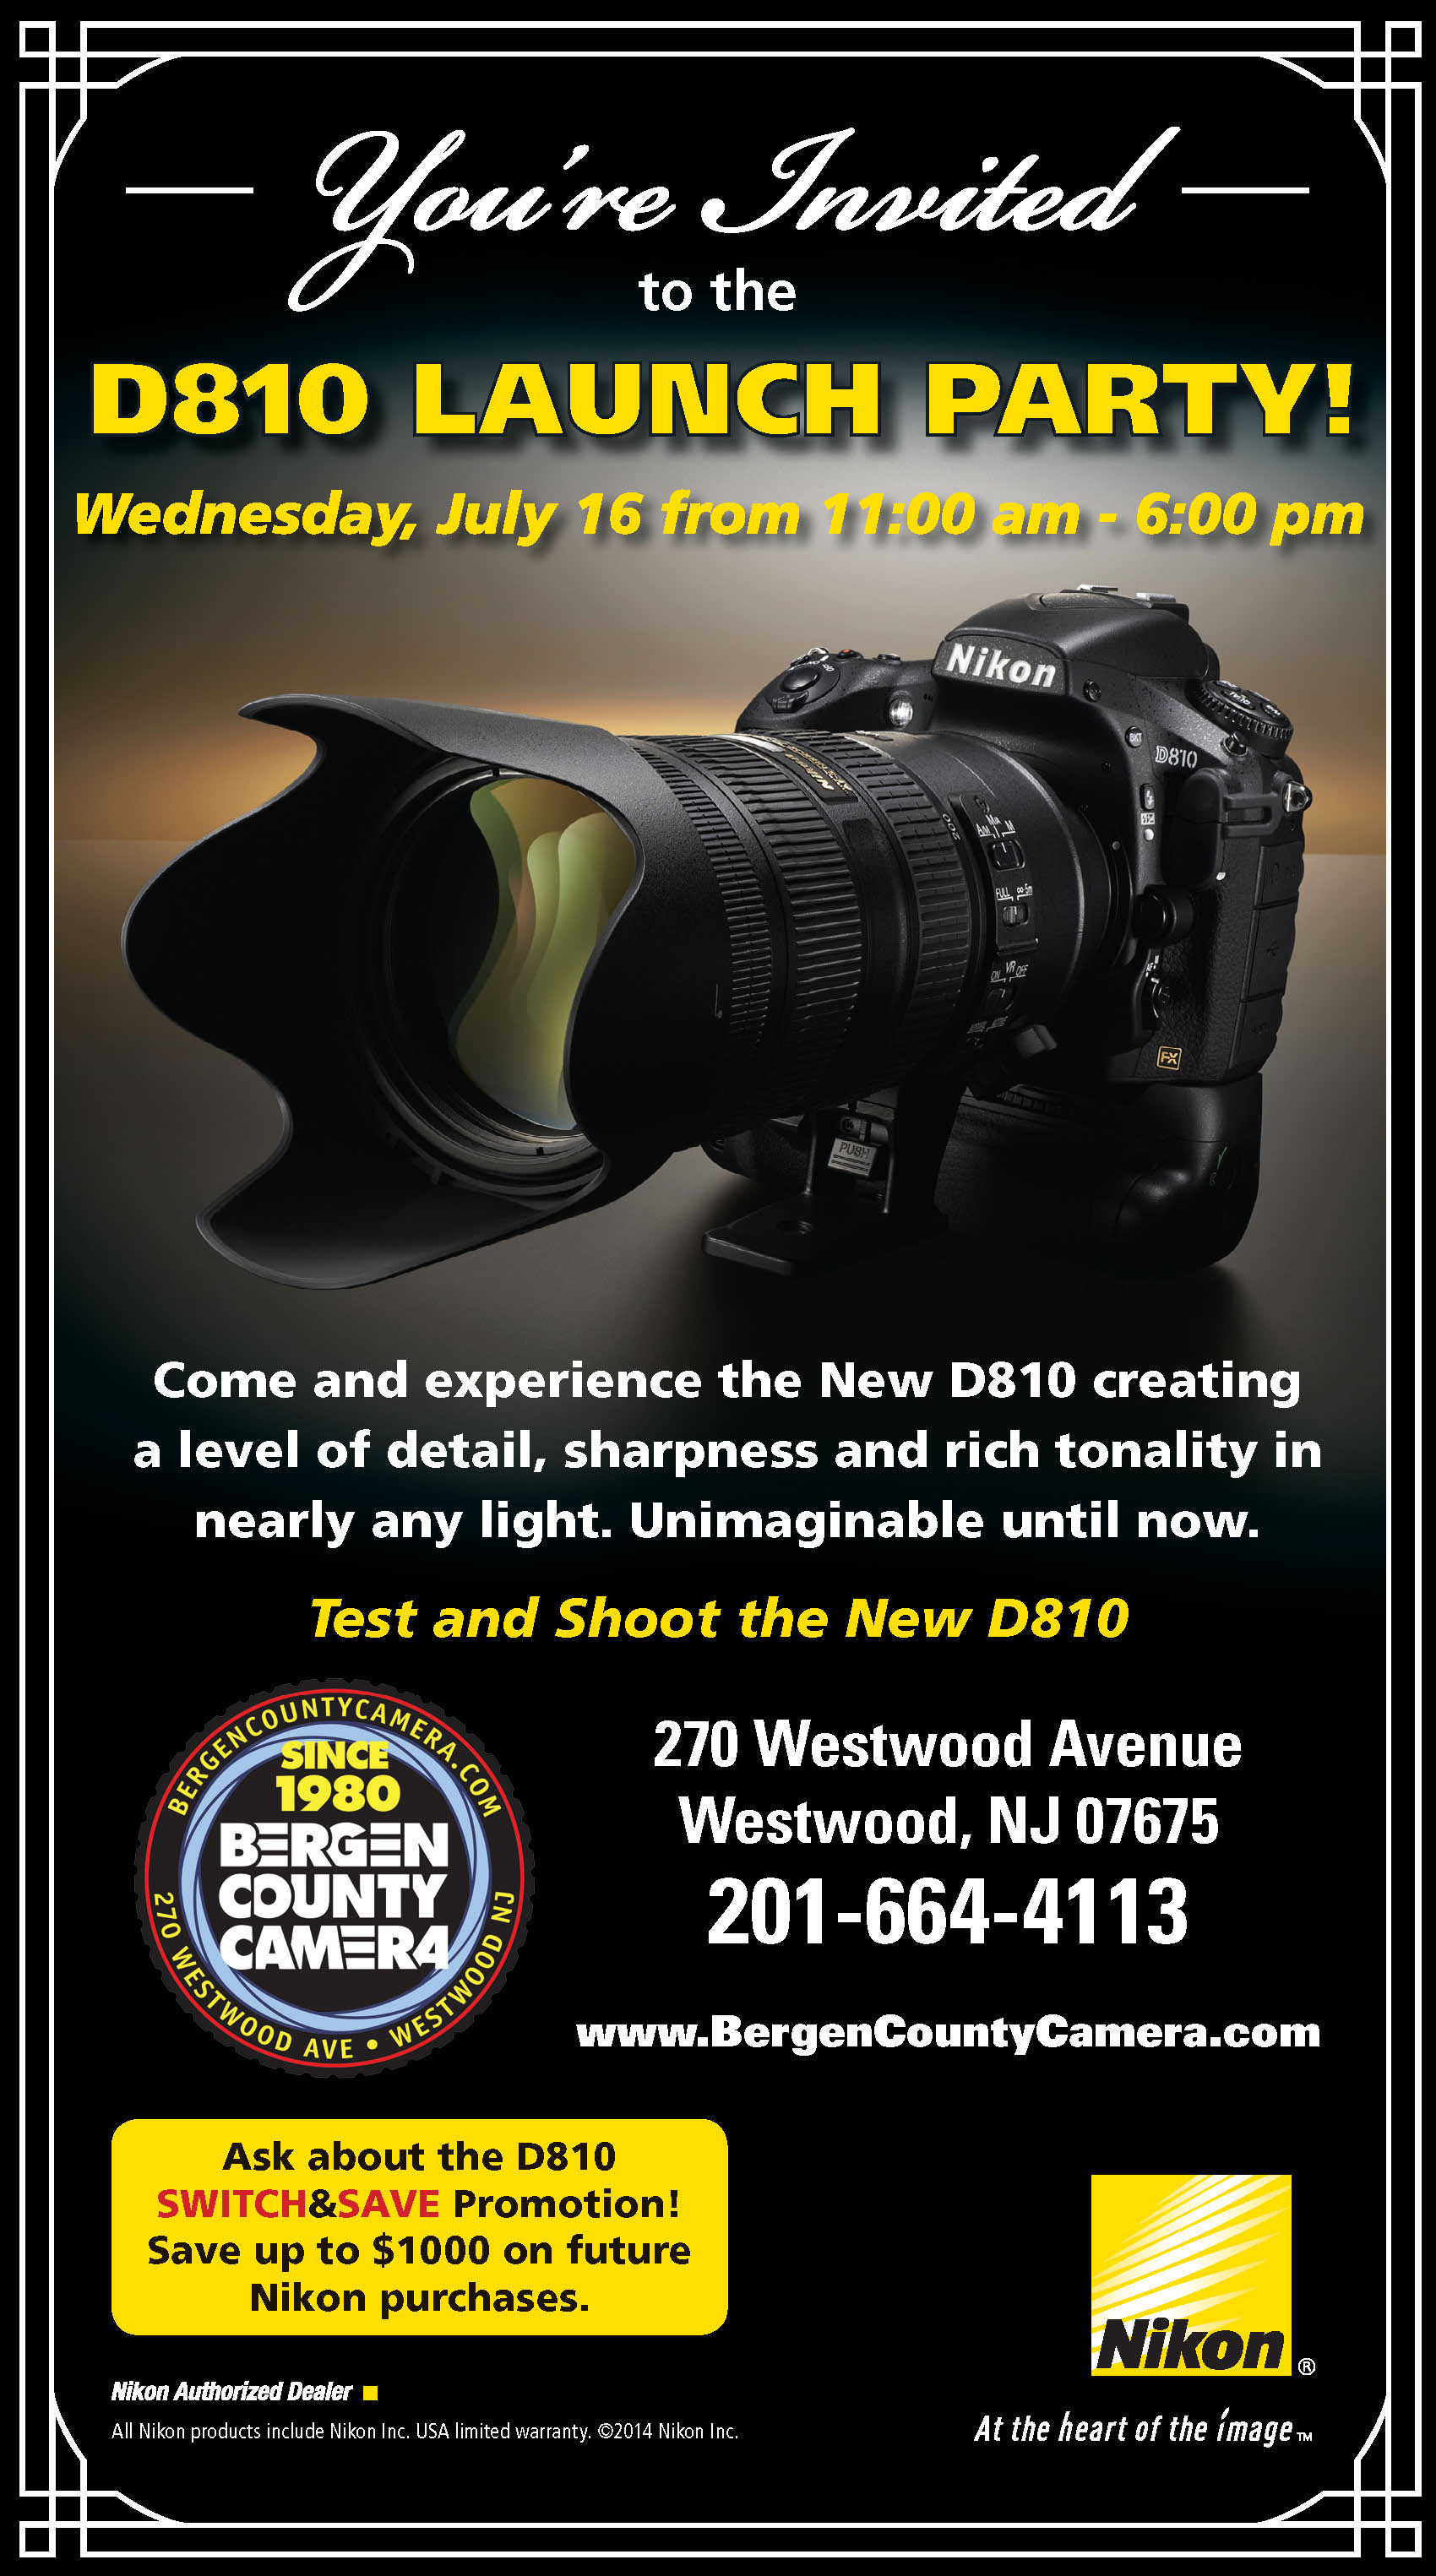 Nikon D810 Launch Party and Switch and Save Program